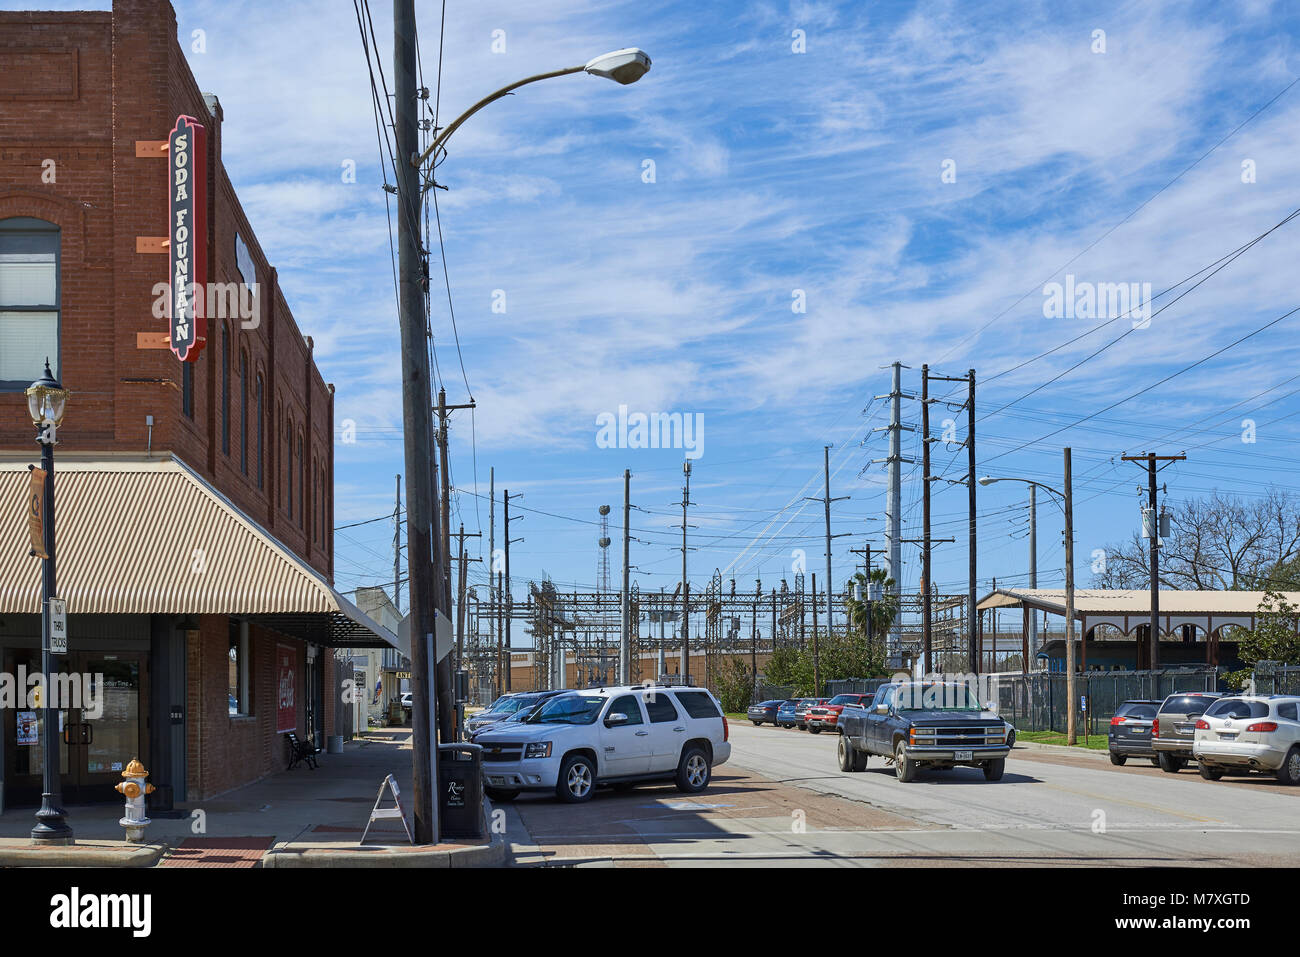 The Electrical Sub Station with all its Pylons downtown next to the Train Station at Rosenberg in Texas. - Stock Image